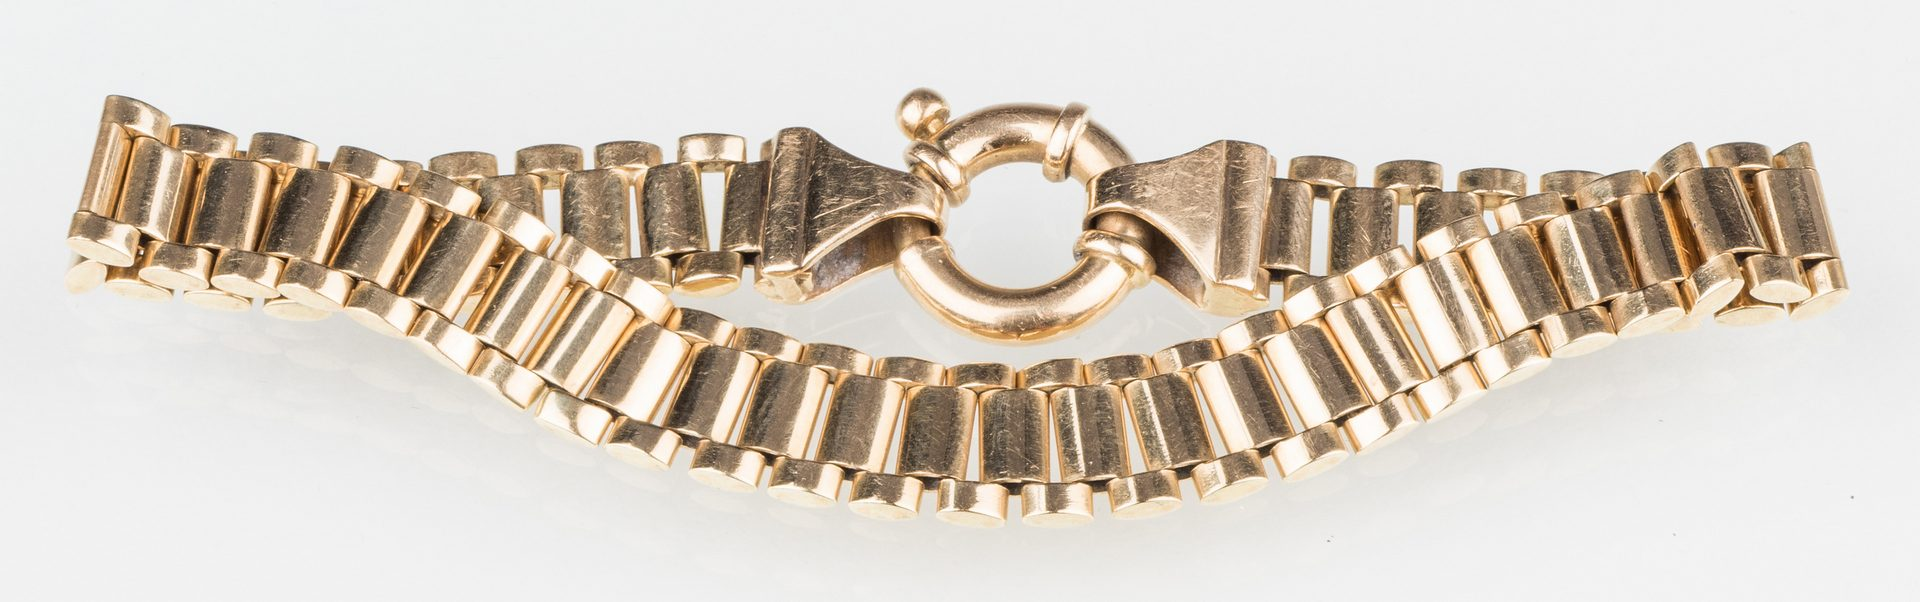 Lot 249: 18K Bracelet with Ring Clasp, 35 g.